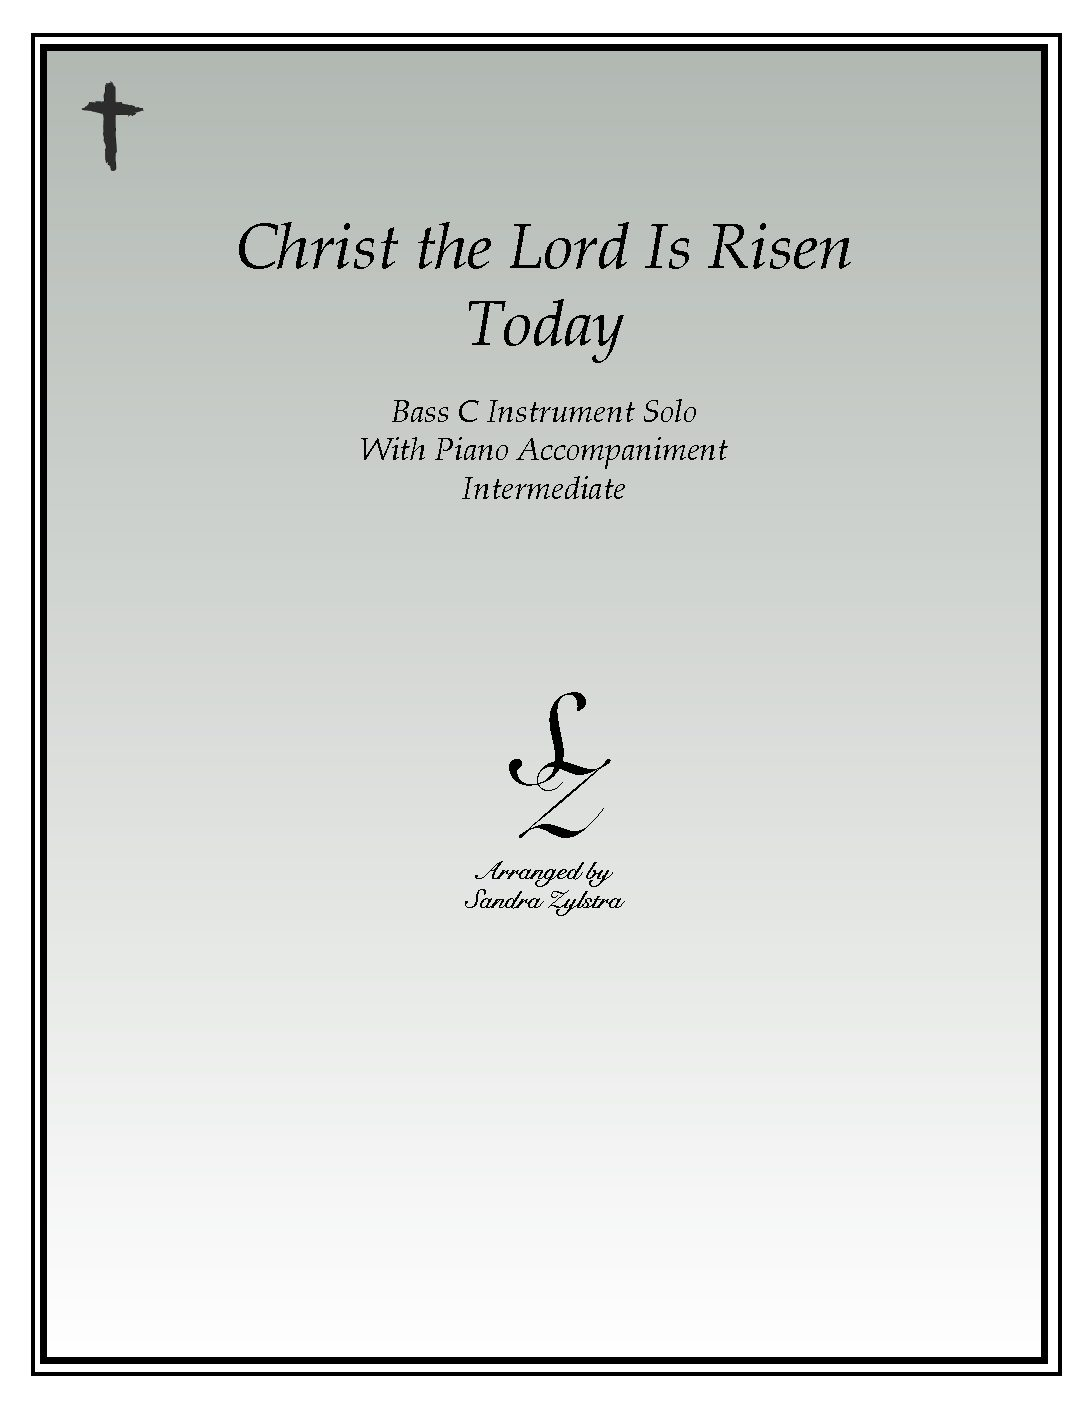 Christ The Lord Is Risen Today -Bass C Instrument Solo